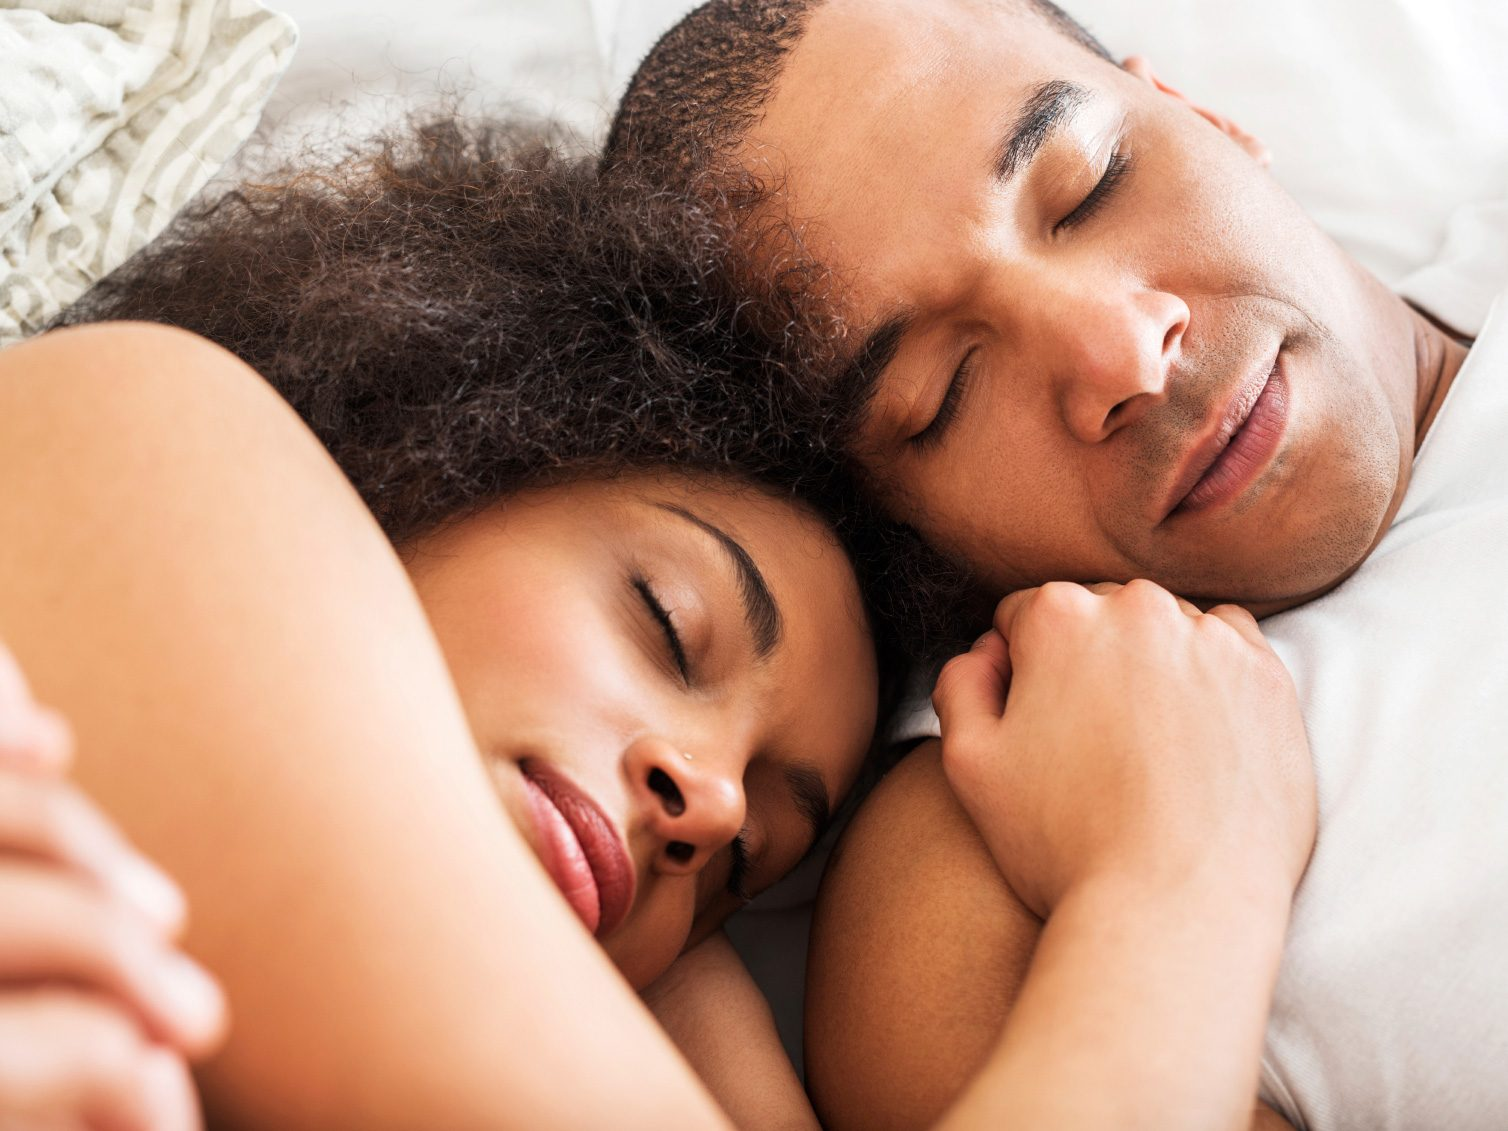 Couples Who Sleep (Really, Really Closely) Together Stay Together